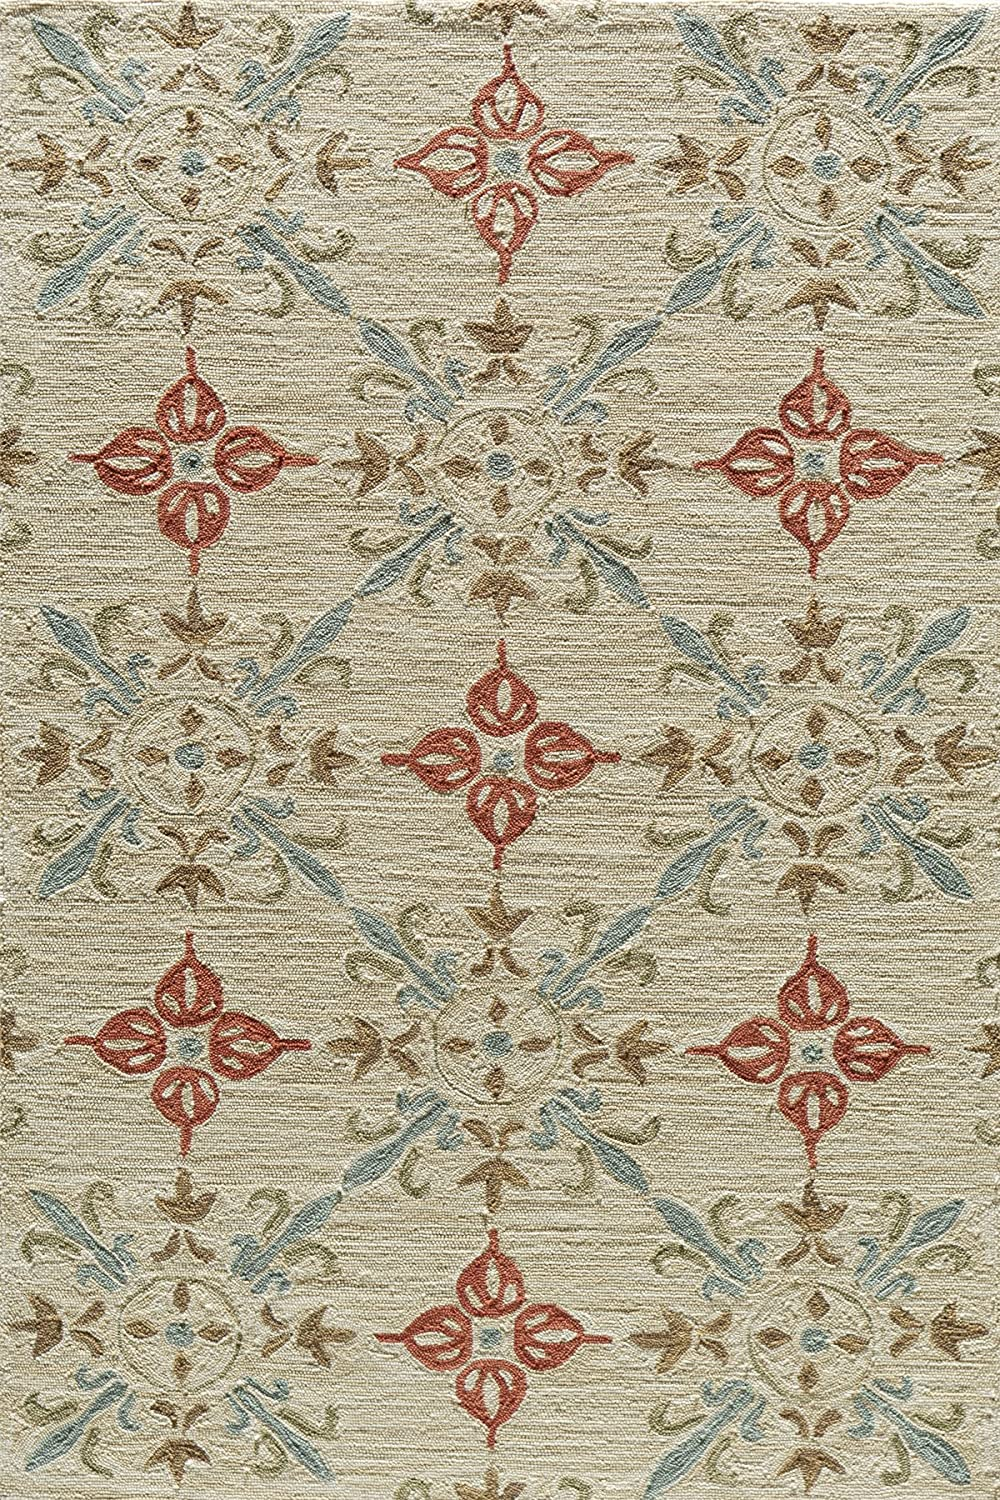 Momeni Rugs SUMITSUM-1SND2376 Summit Collection, Hand Knotted Transitional Area Rug, 2'3' x 7'6' Runner, Sand 2'3 x 7'6 Runner Inc DROPSHIP